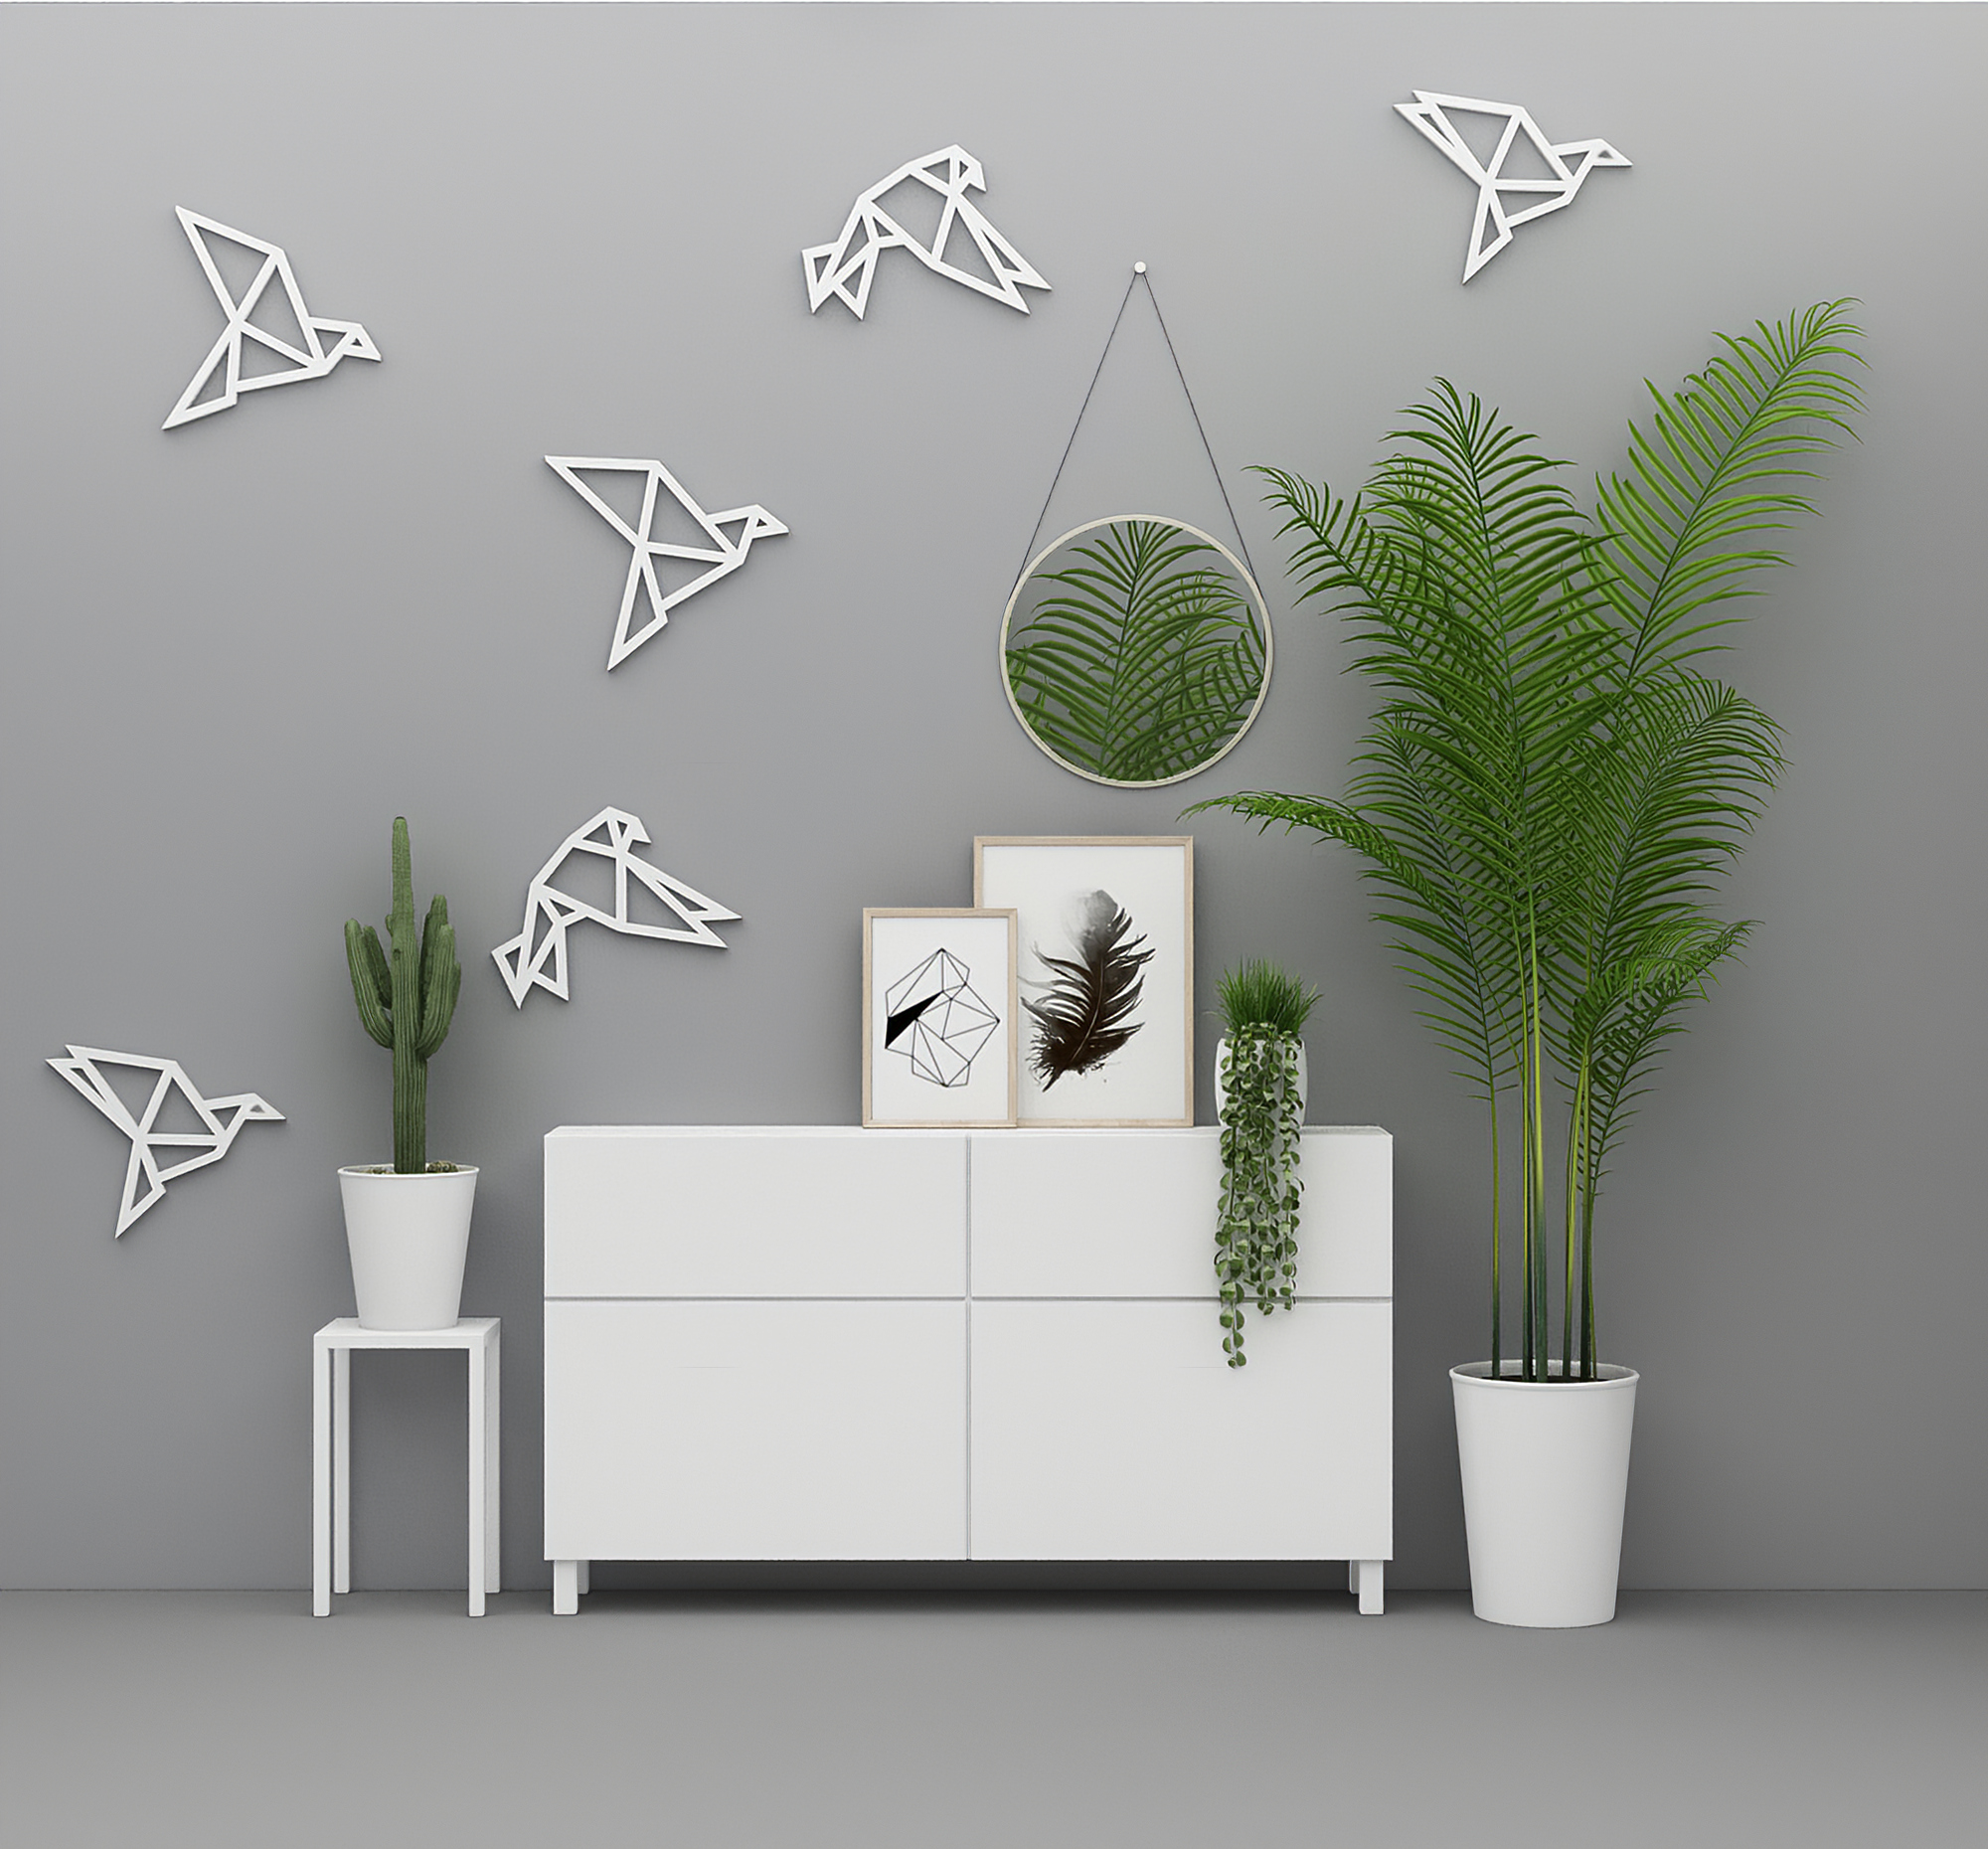 Origami Birds 3d Wall Decor Pack Of 6